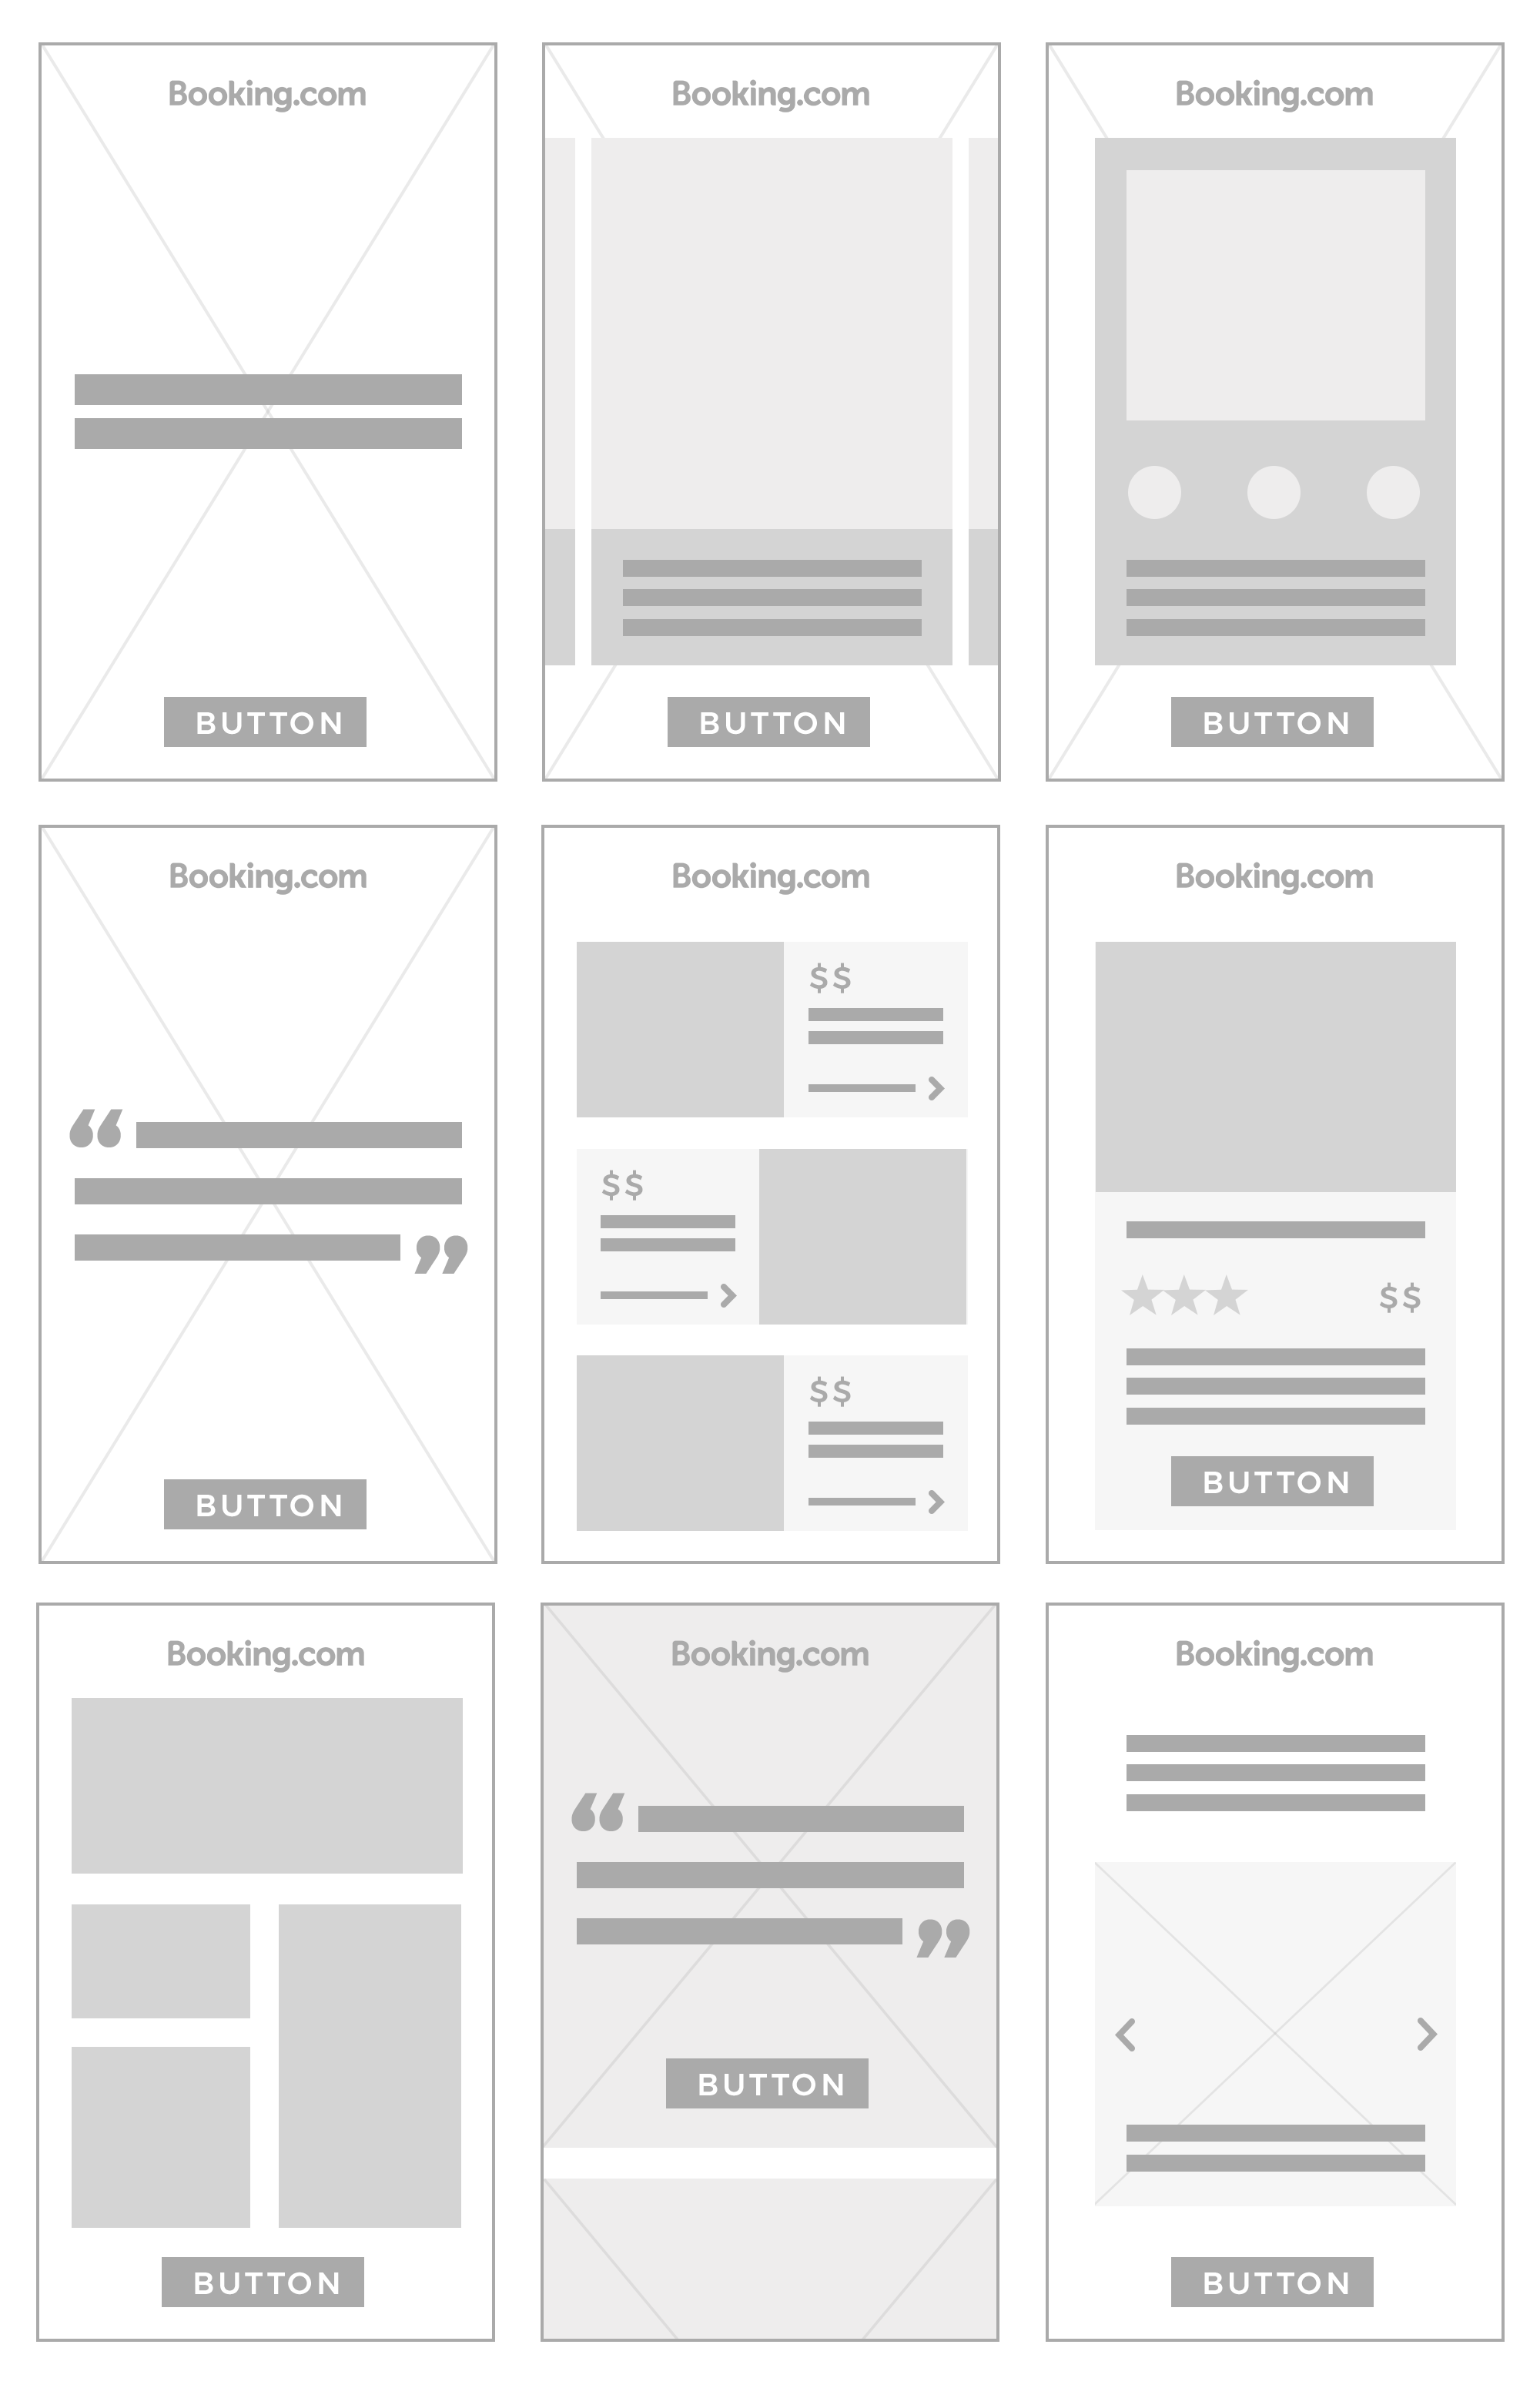 BookingWireframes.png